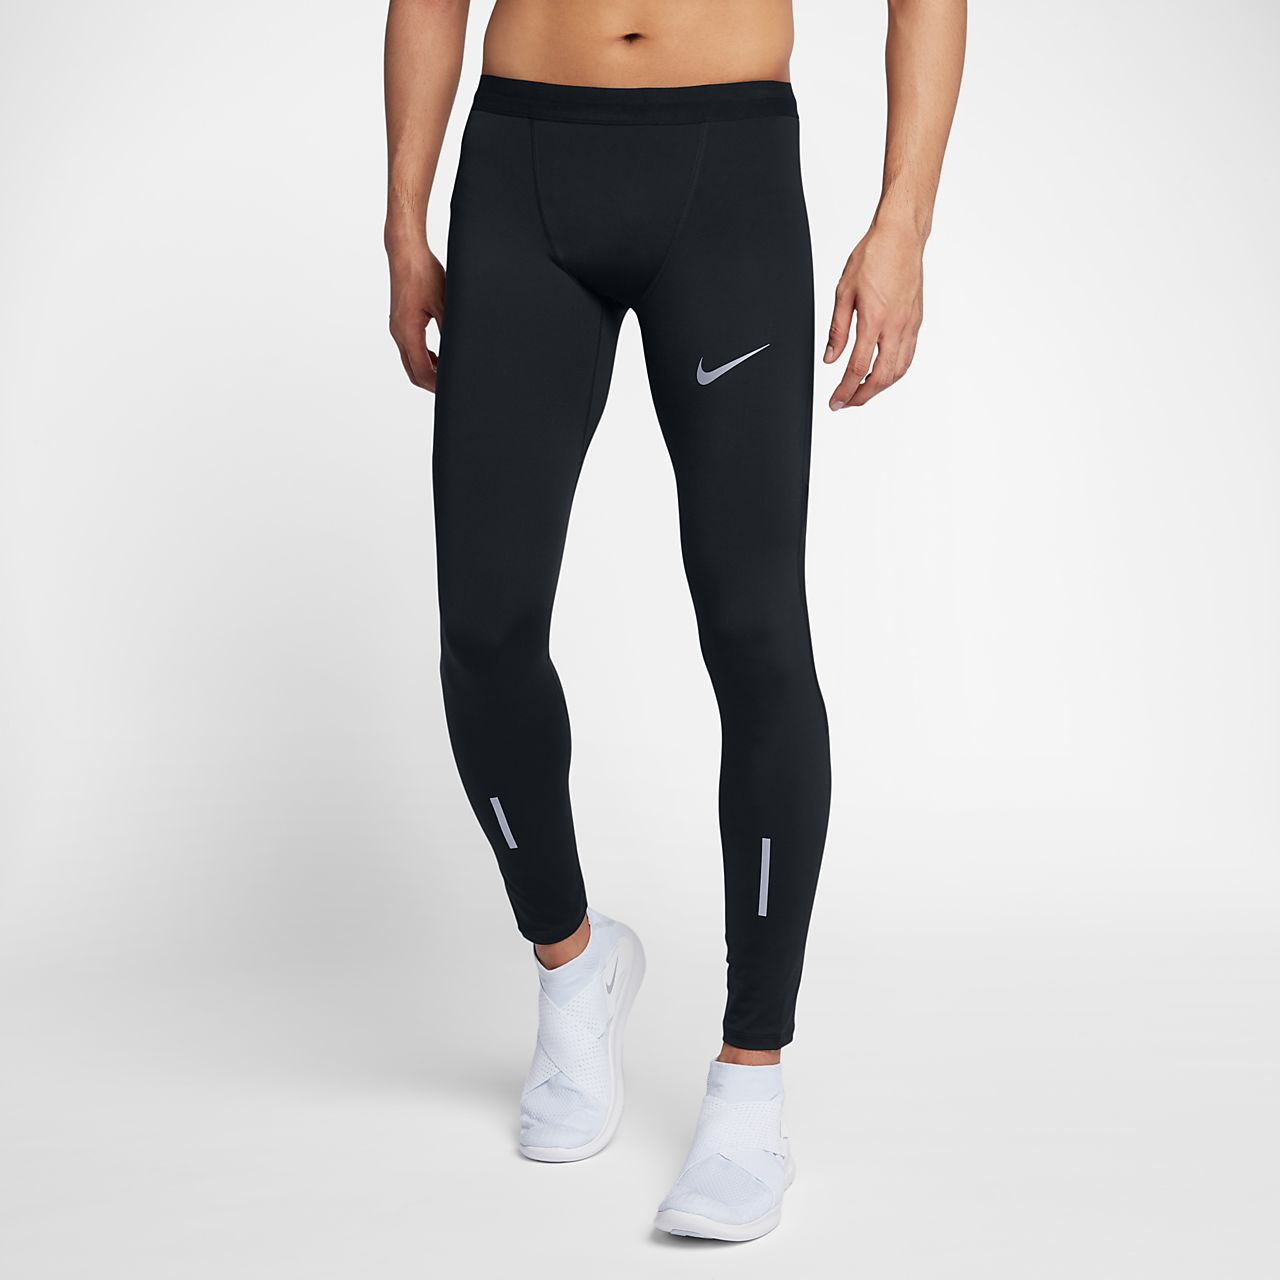 nike collant homme